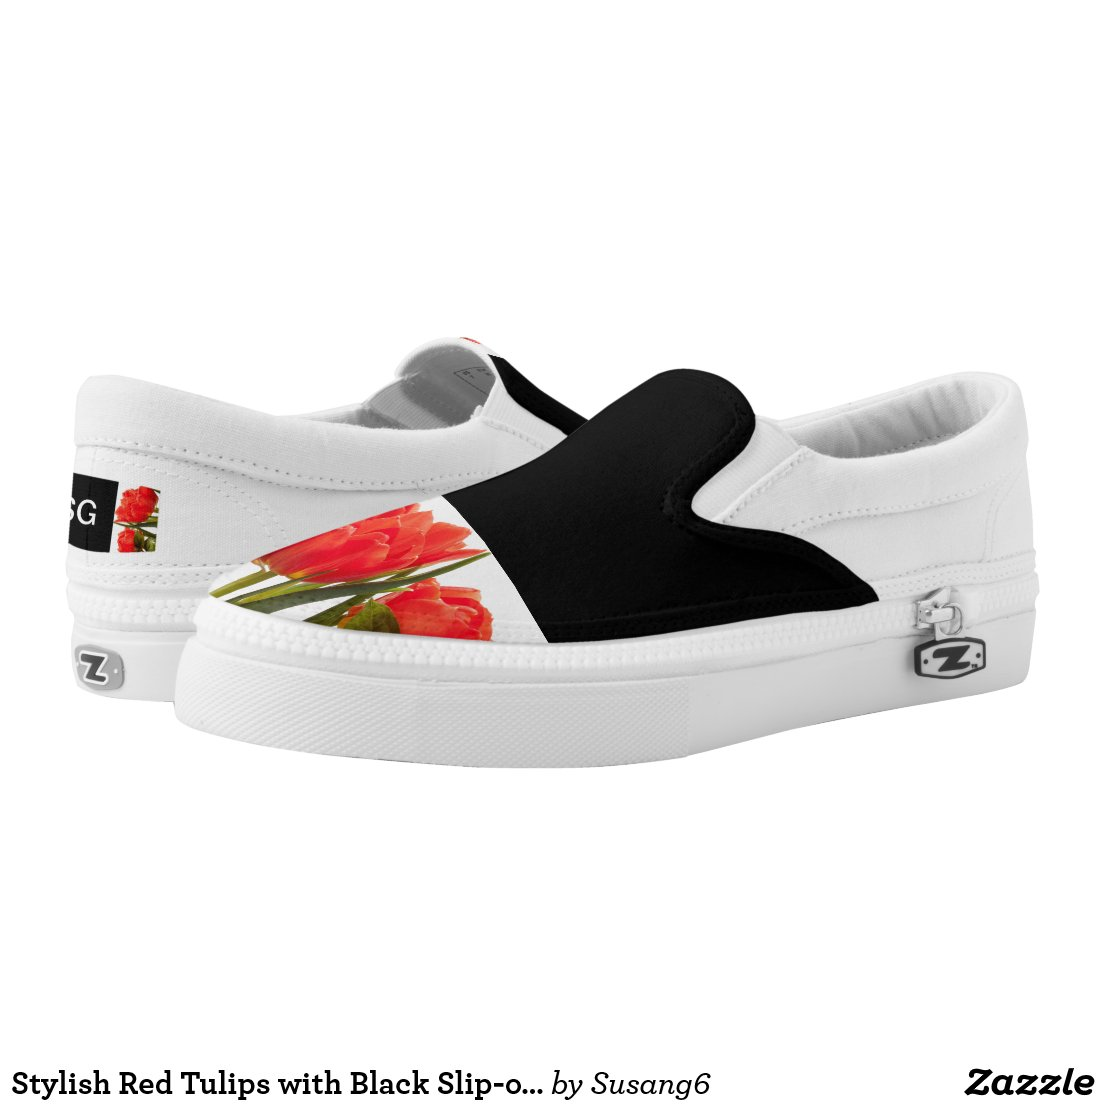 Stylish Red Tulips with Black Slip-on Sneakers